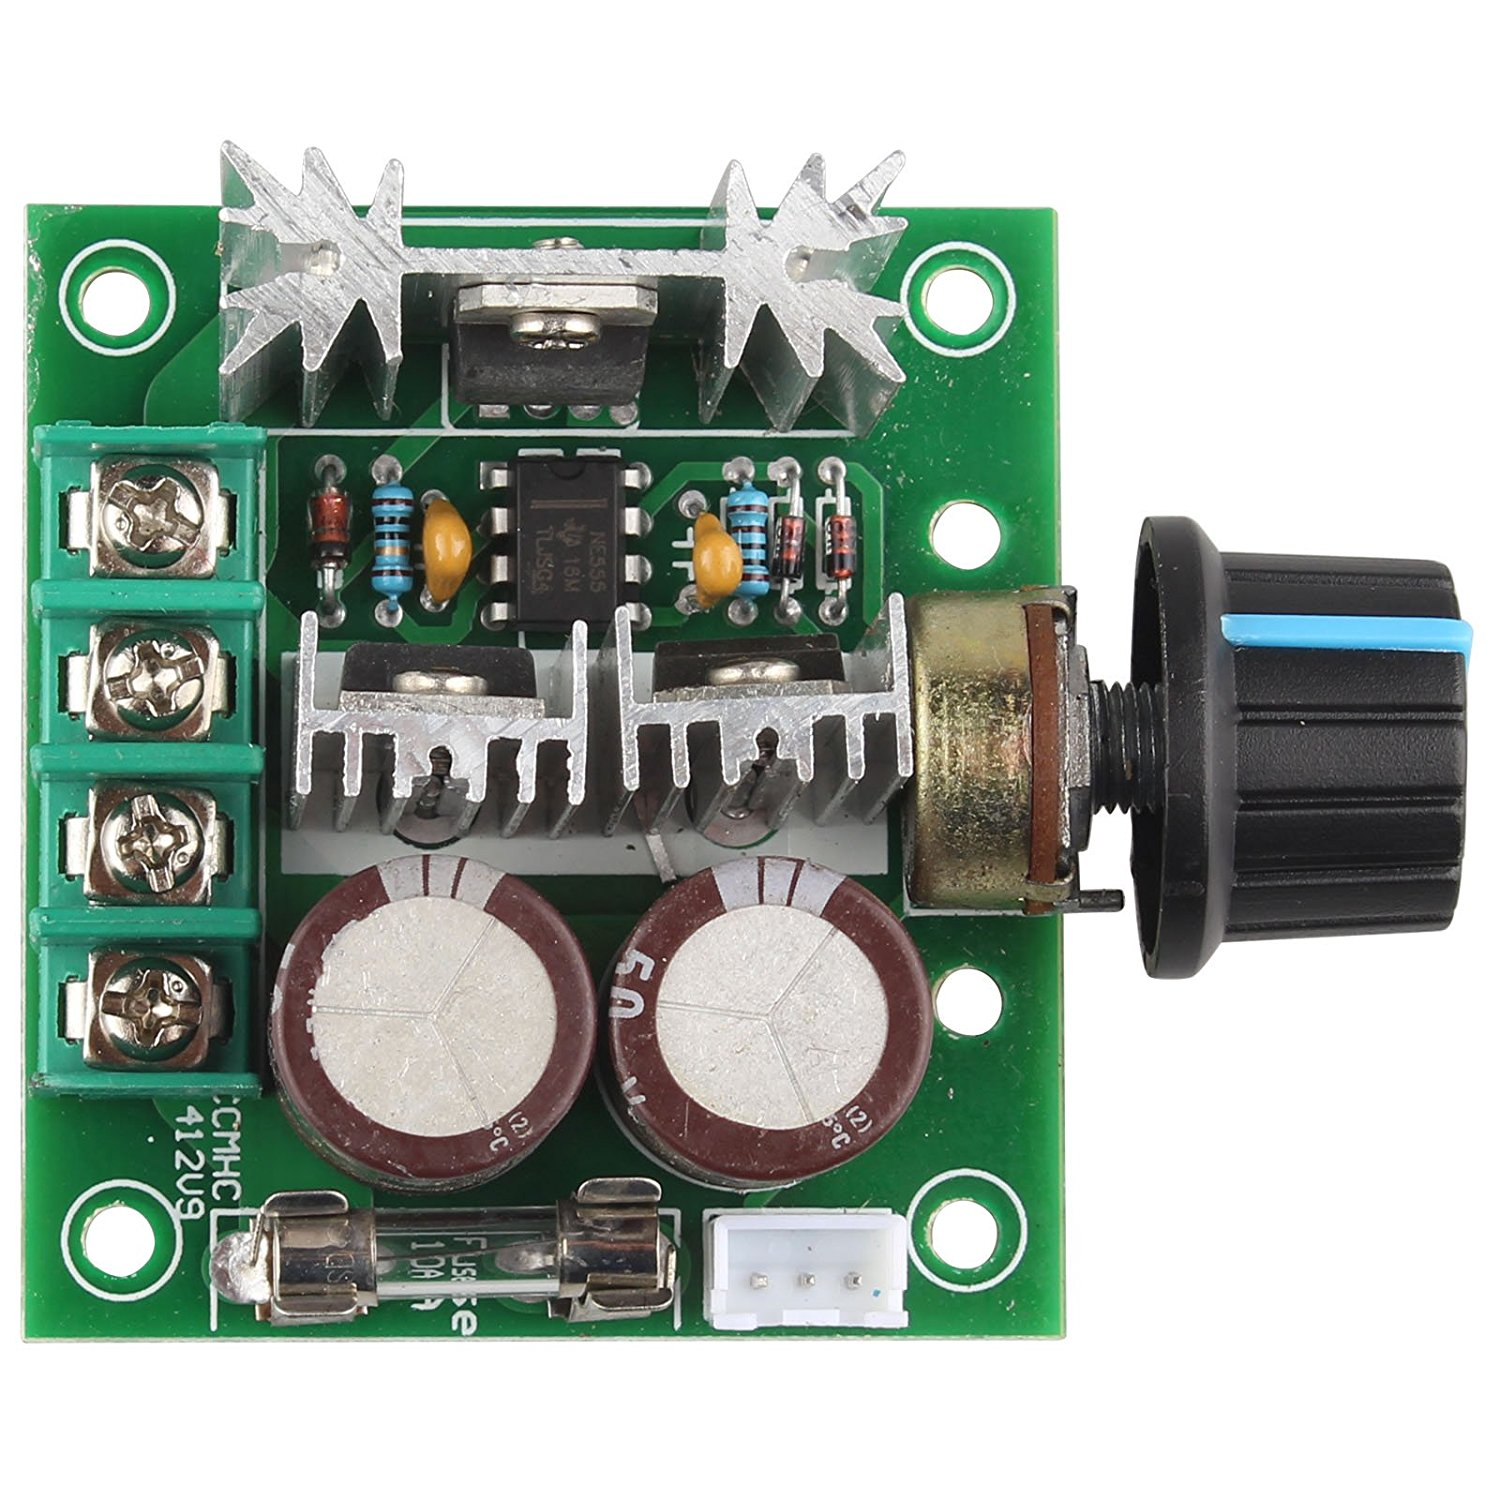 Cheap Pulse Width Modulation Dc Find Pwm For Motor Speed And Led Brightness Get Quotations 12v 40v 10a Controller Switch